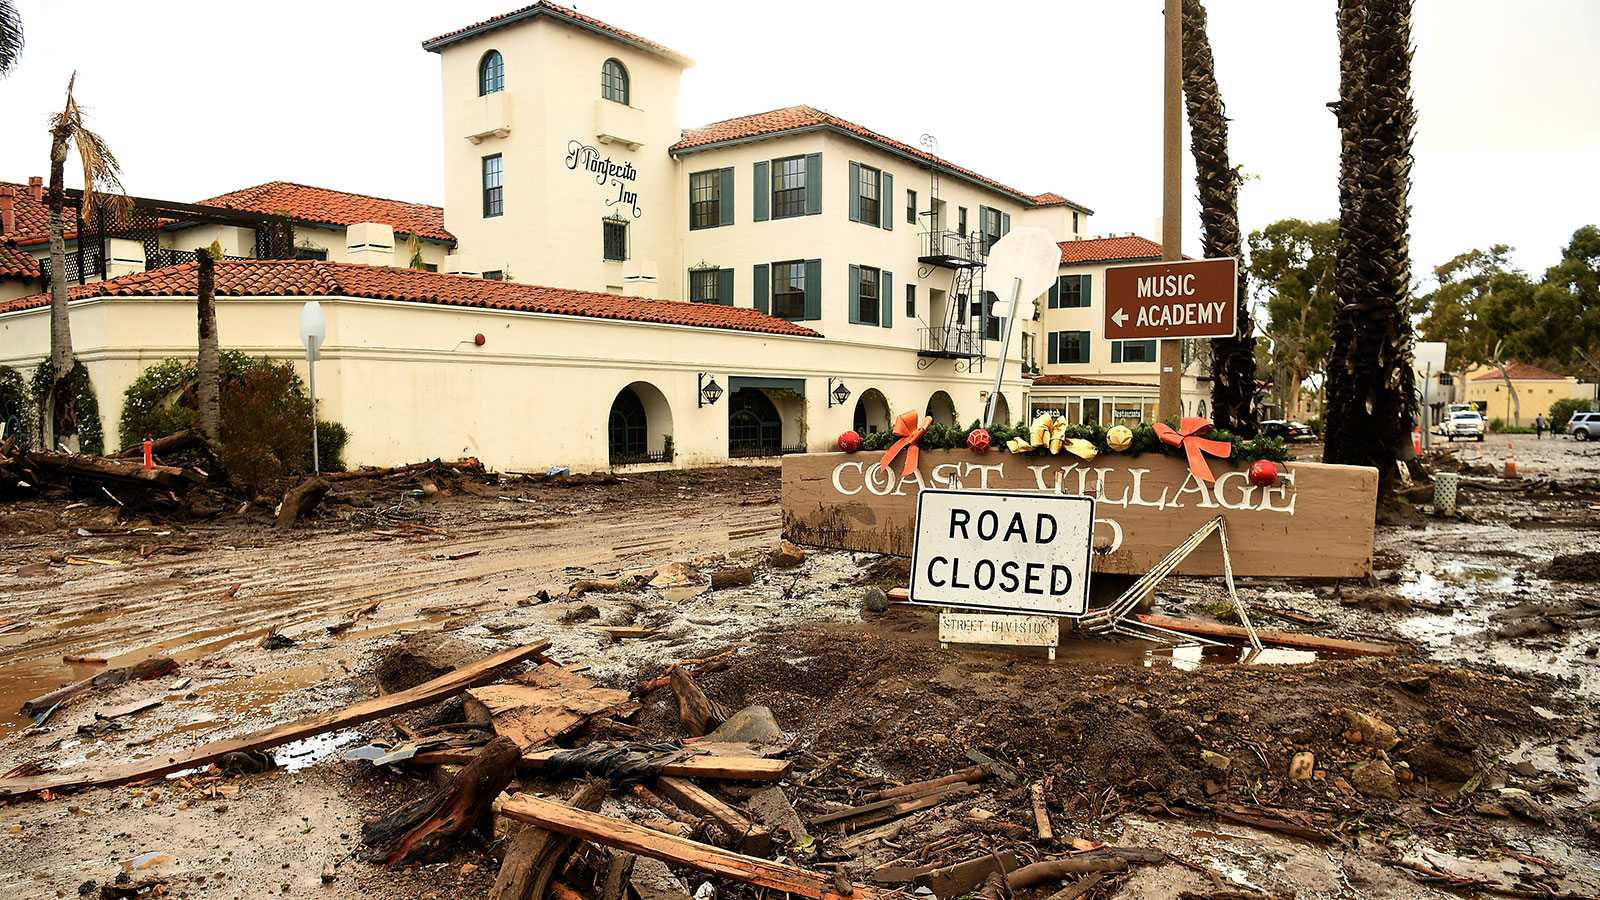 Devastating Mudslides Kill 20 in Santa Barbara County